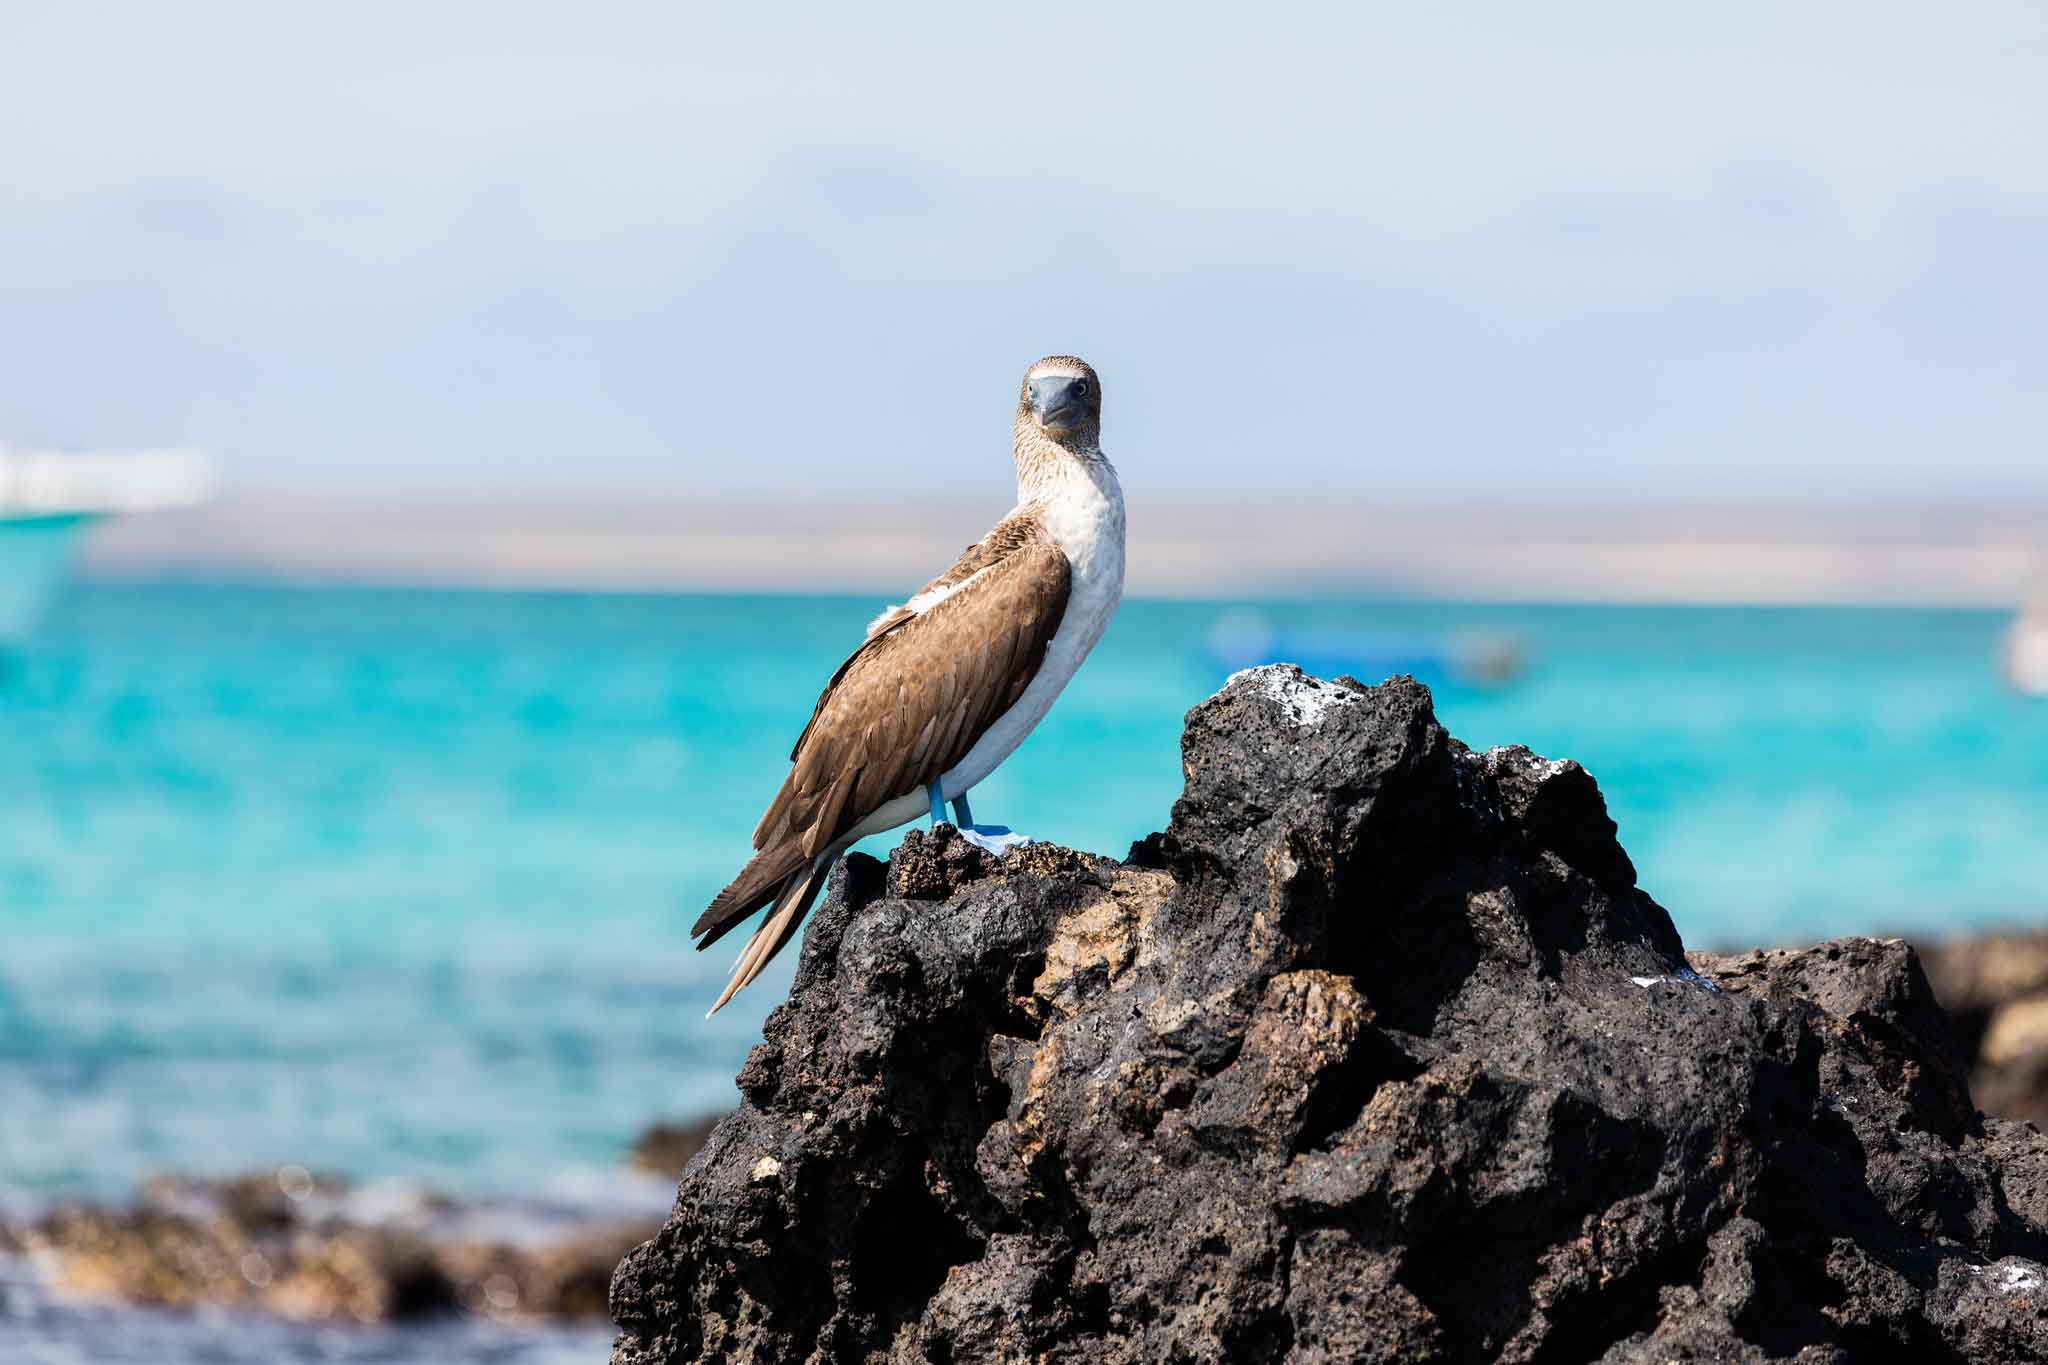 Petrel | Galapagos Islands | Galapagos Cruises